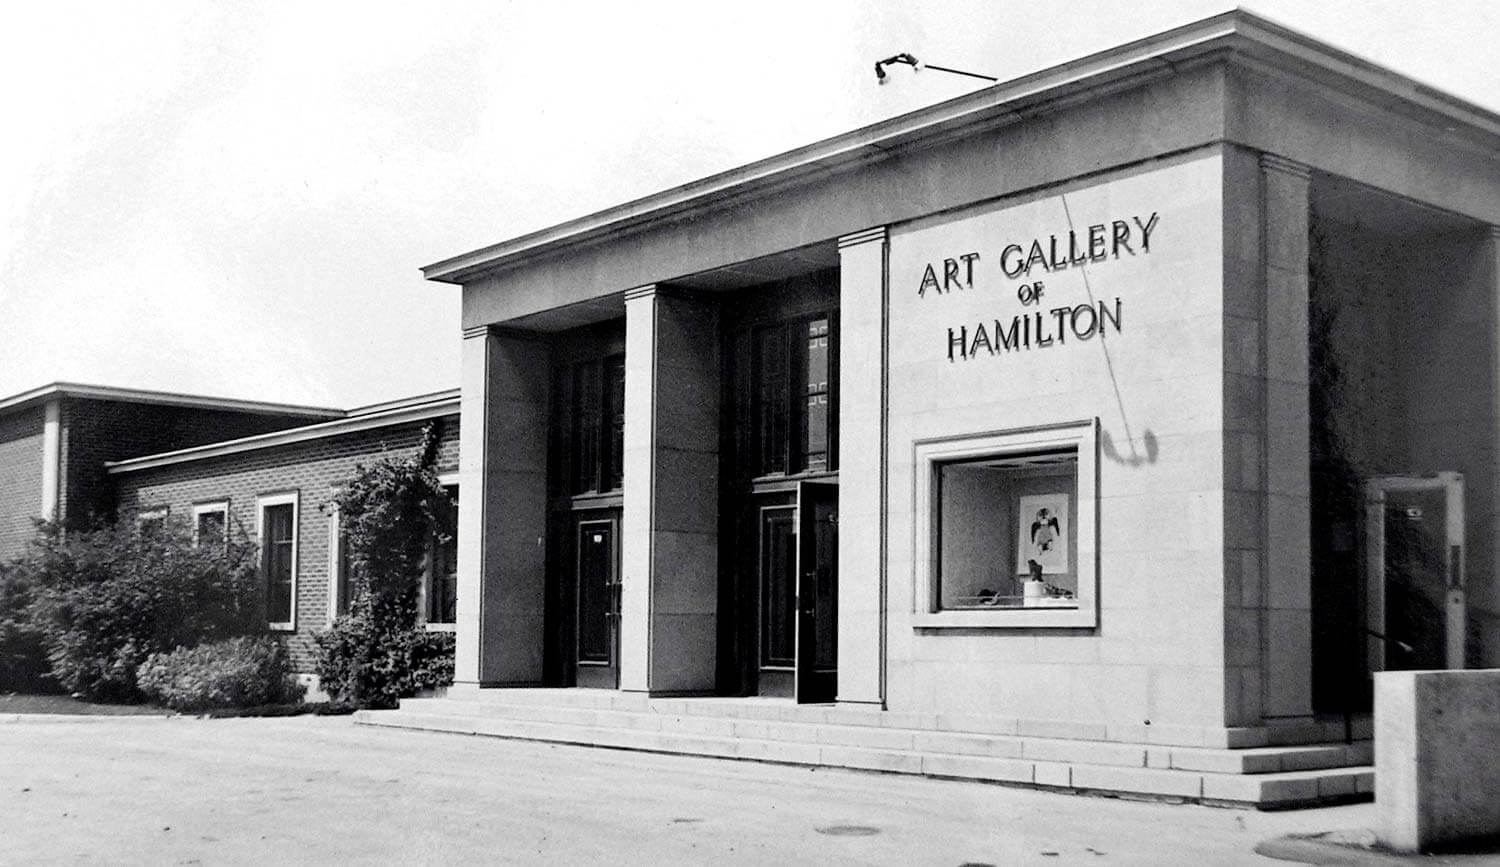 Art Gallery of Hamilton circa 1952.